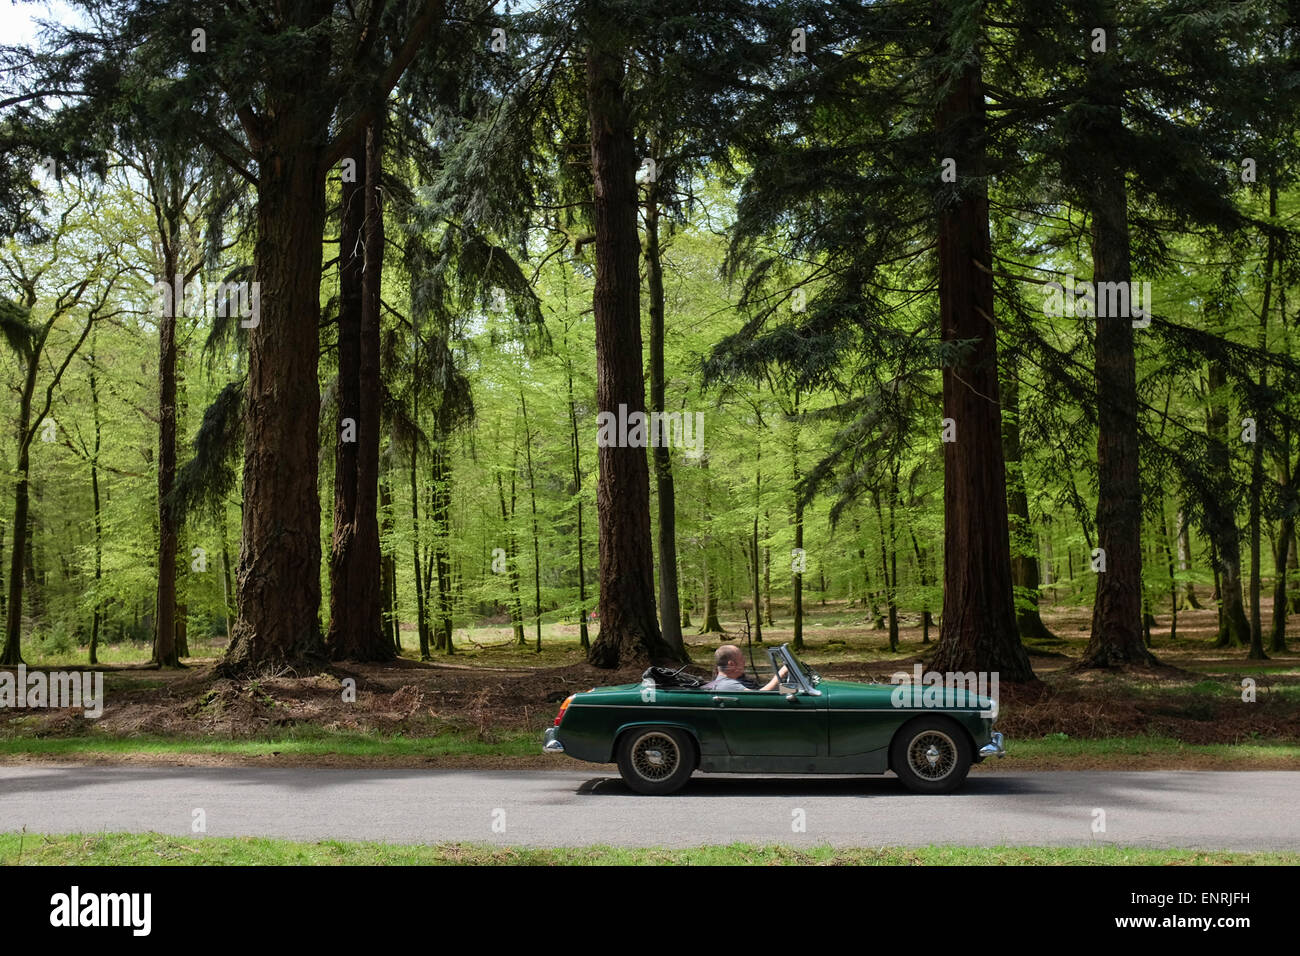 A Classic sports car driving past giant trees in the New Forest Nation Park - Stock Image